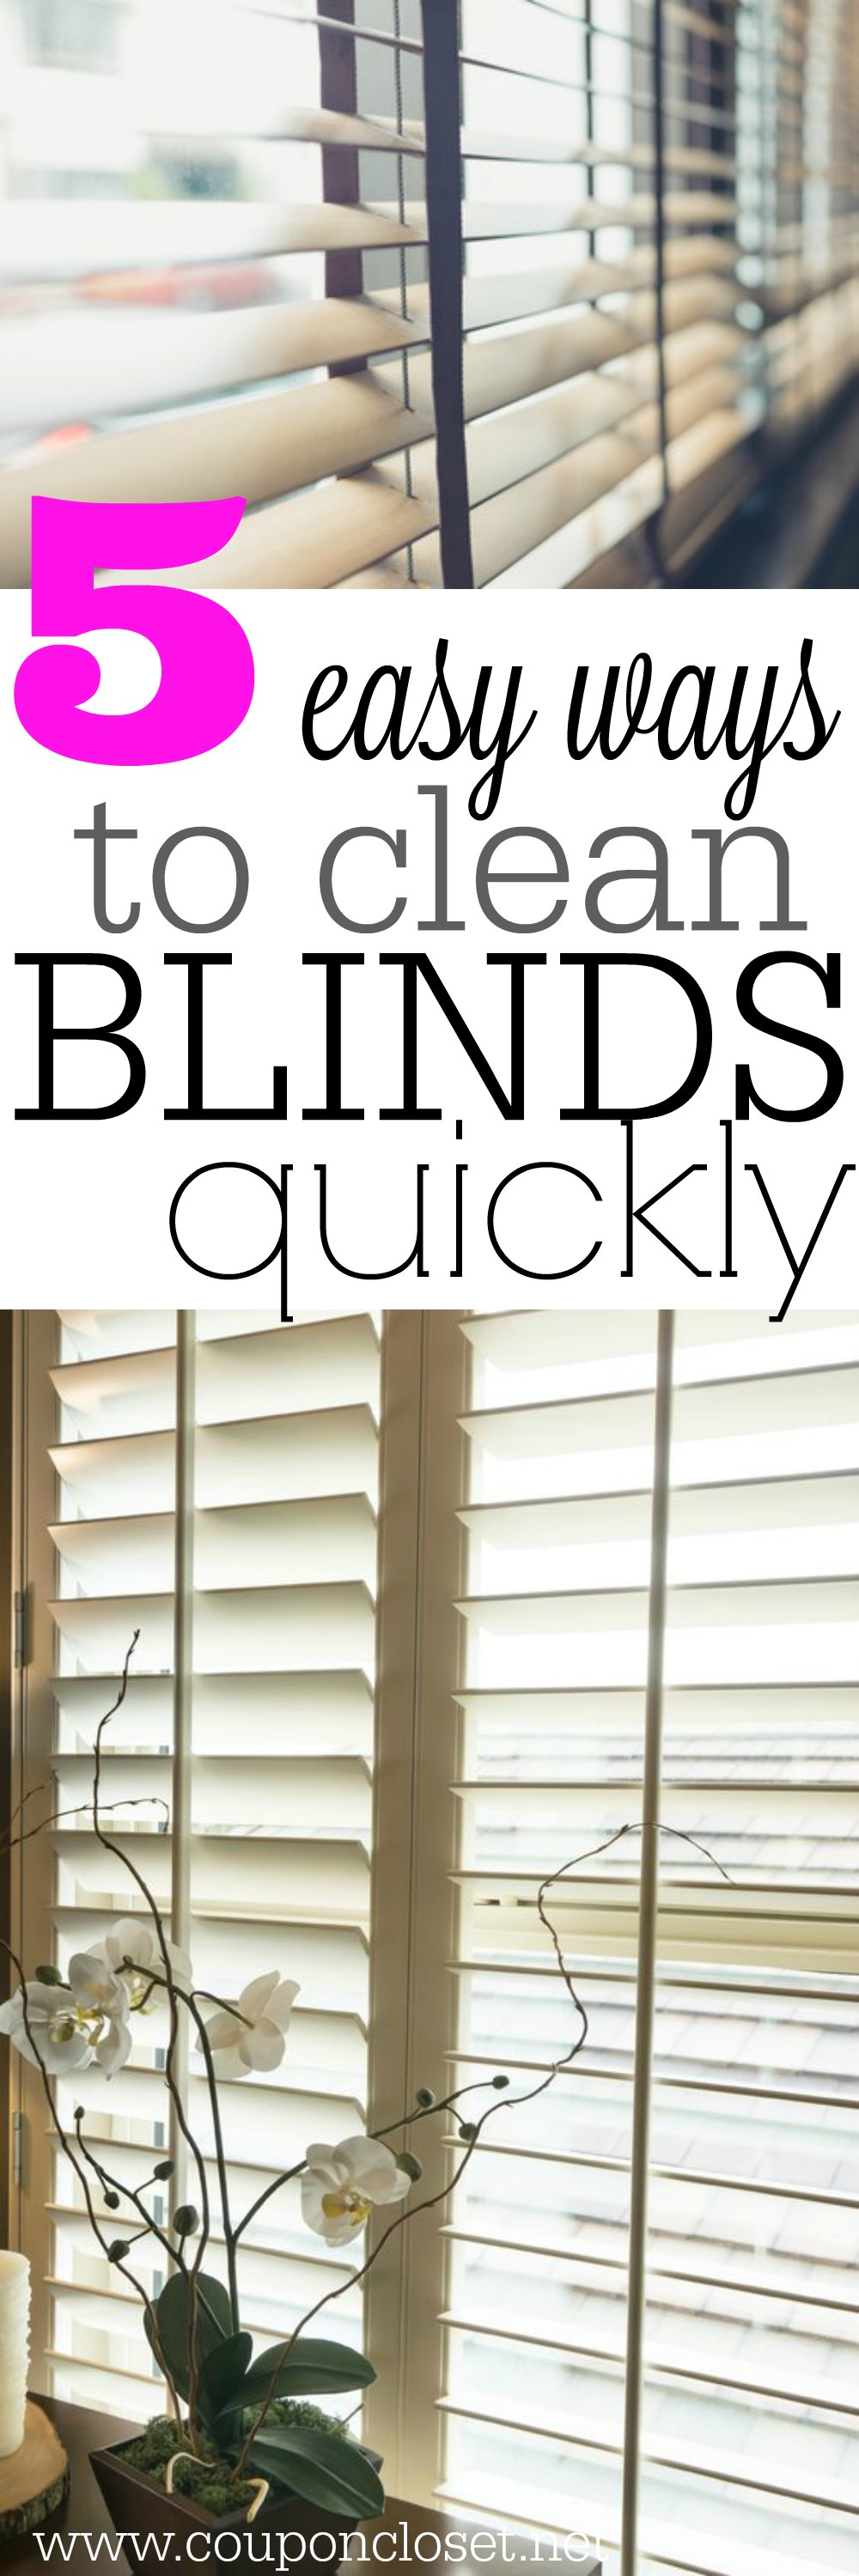 How To Clean Blinds Easily 5 Easy Ways One Crazy Mom